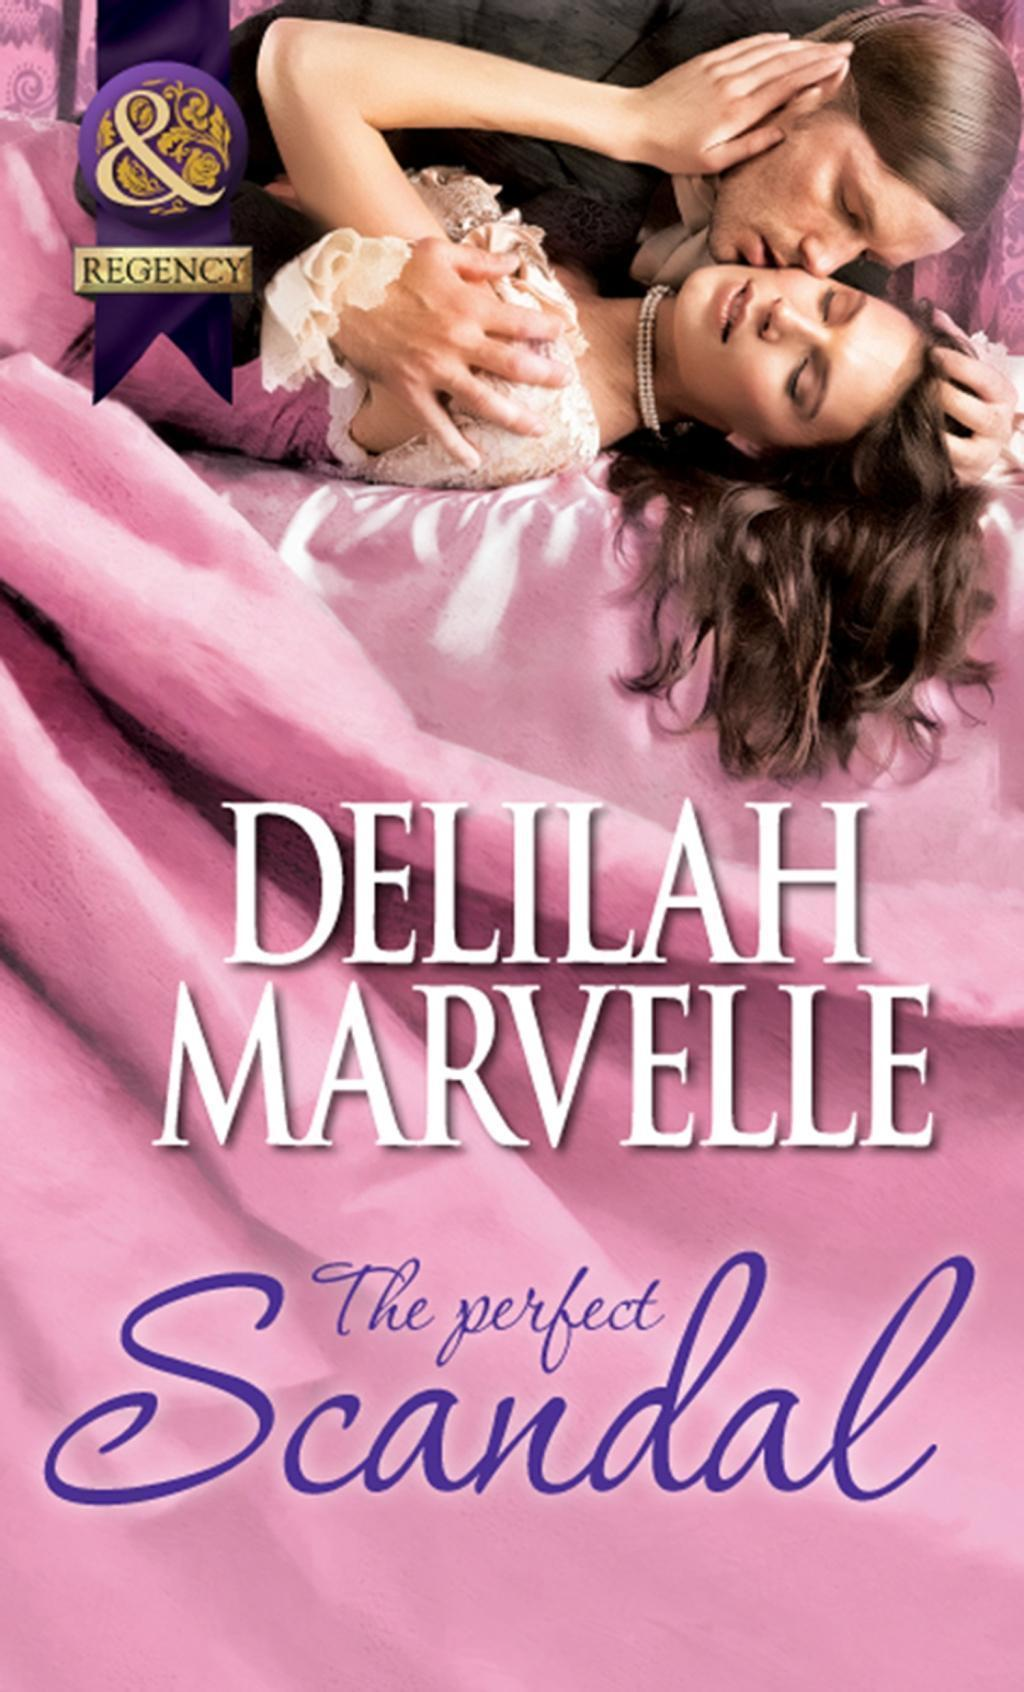 The Perfect Scandal (Mills & Boon Historical) (The Scandal Series, Book 3)